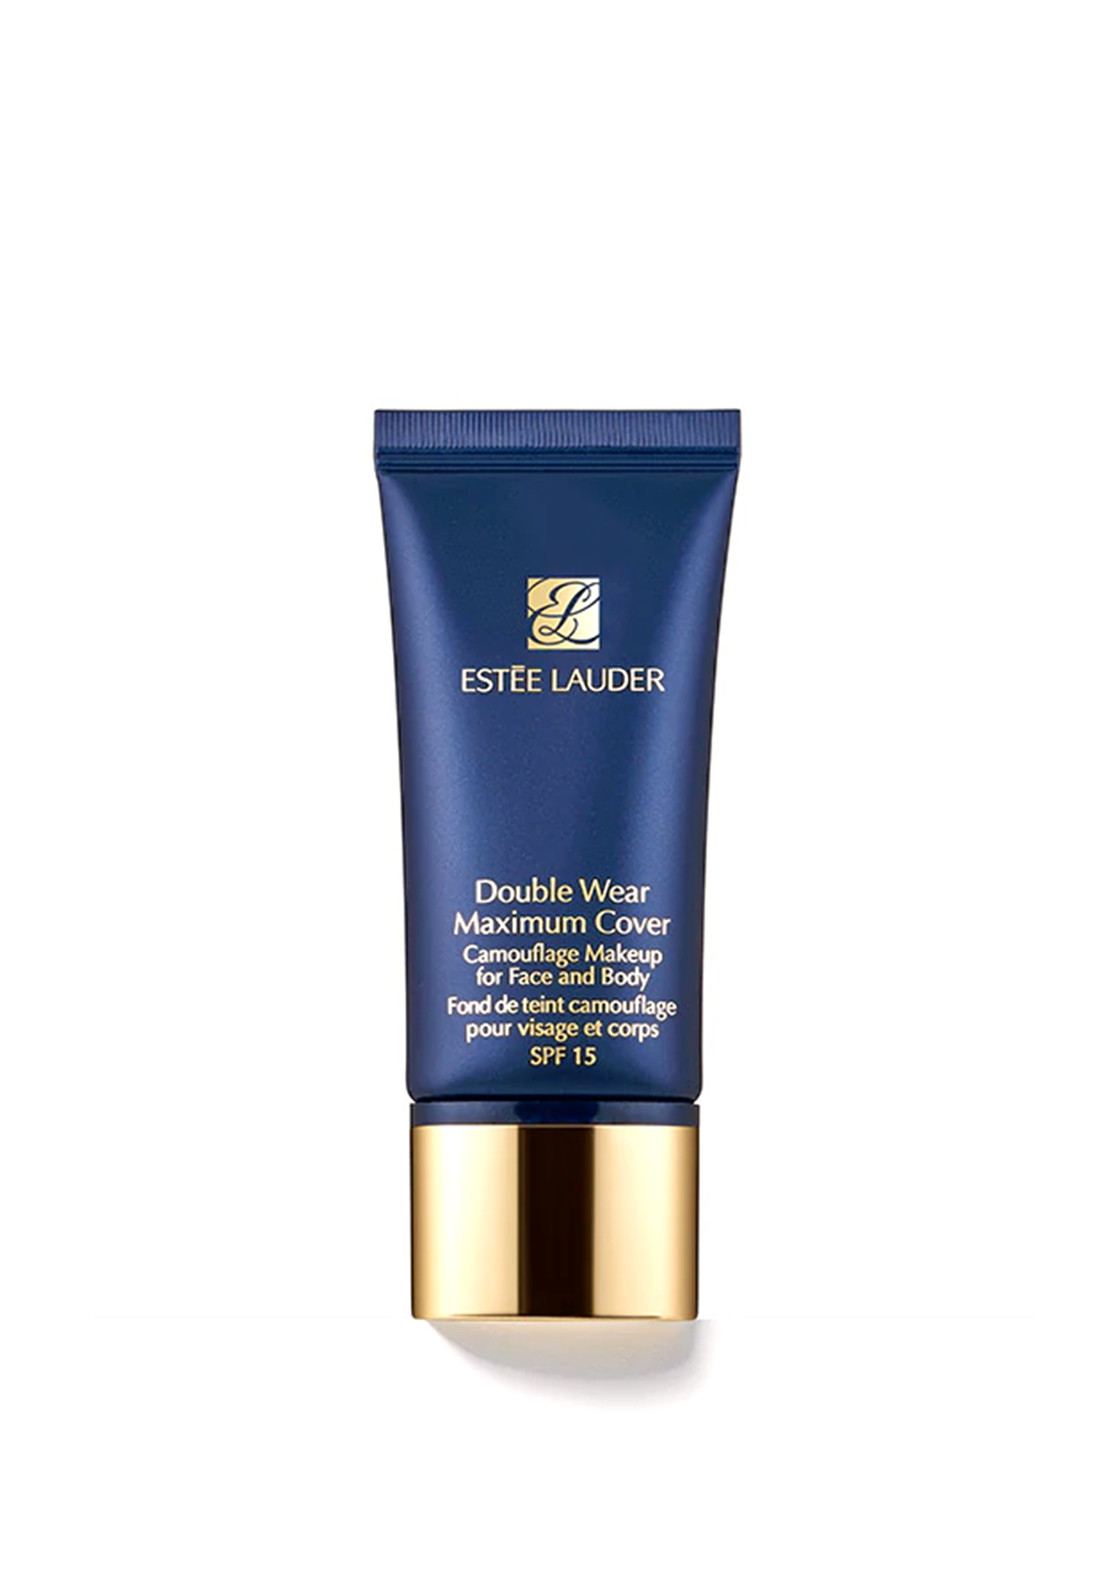 Estee Lauder Double Wear Maximum Cover Foundation, Medium/Deep